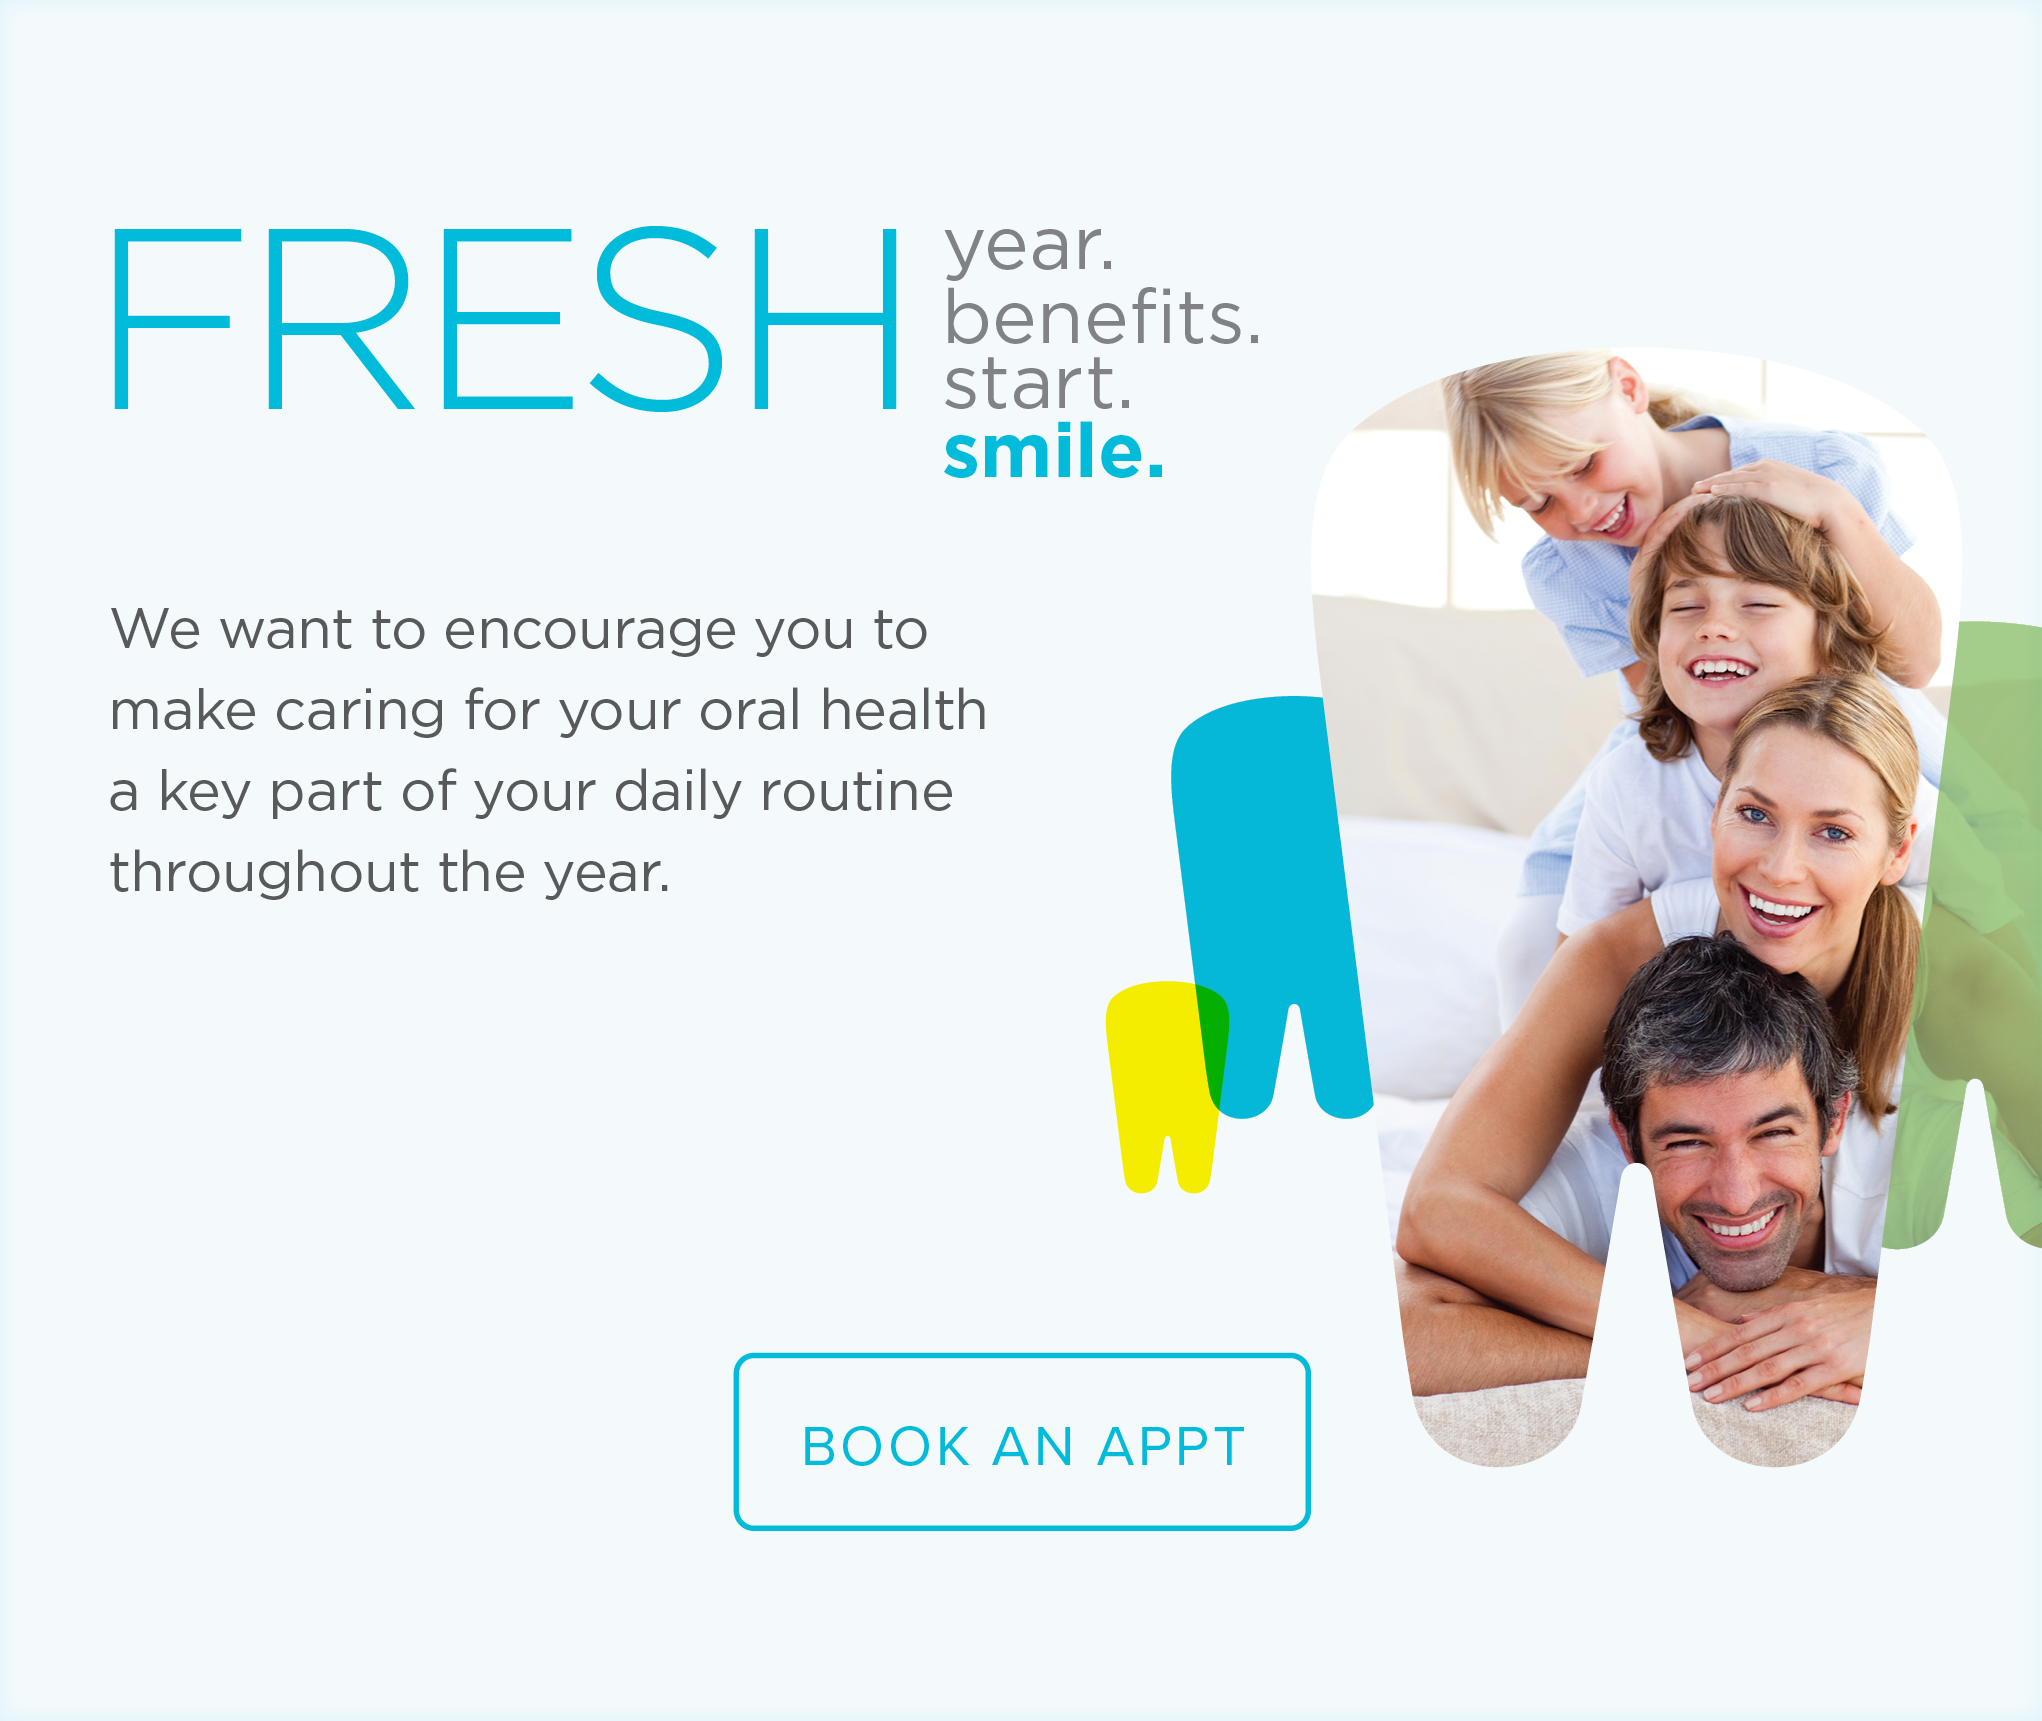 Temecula Dental Practice and Orthodontics - Make the Most of Your Benefits